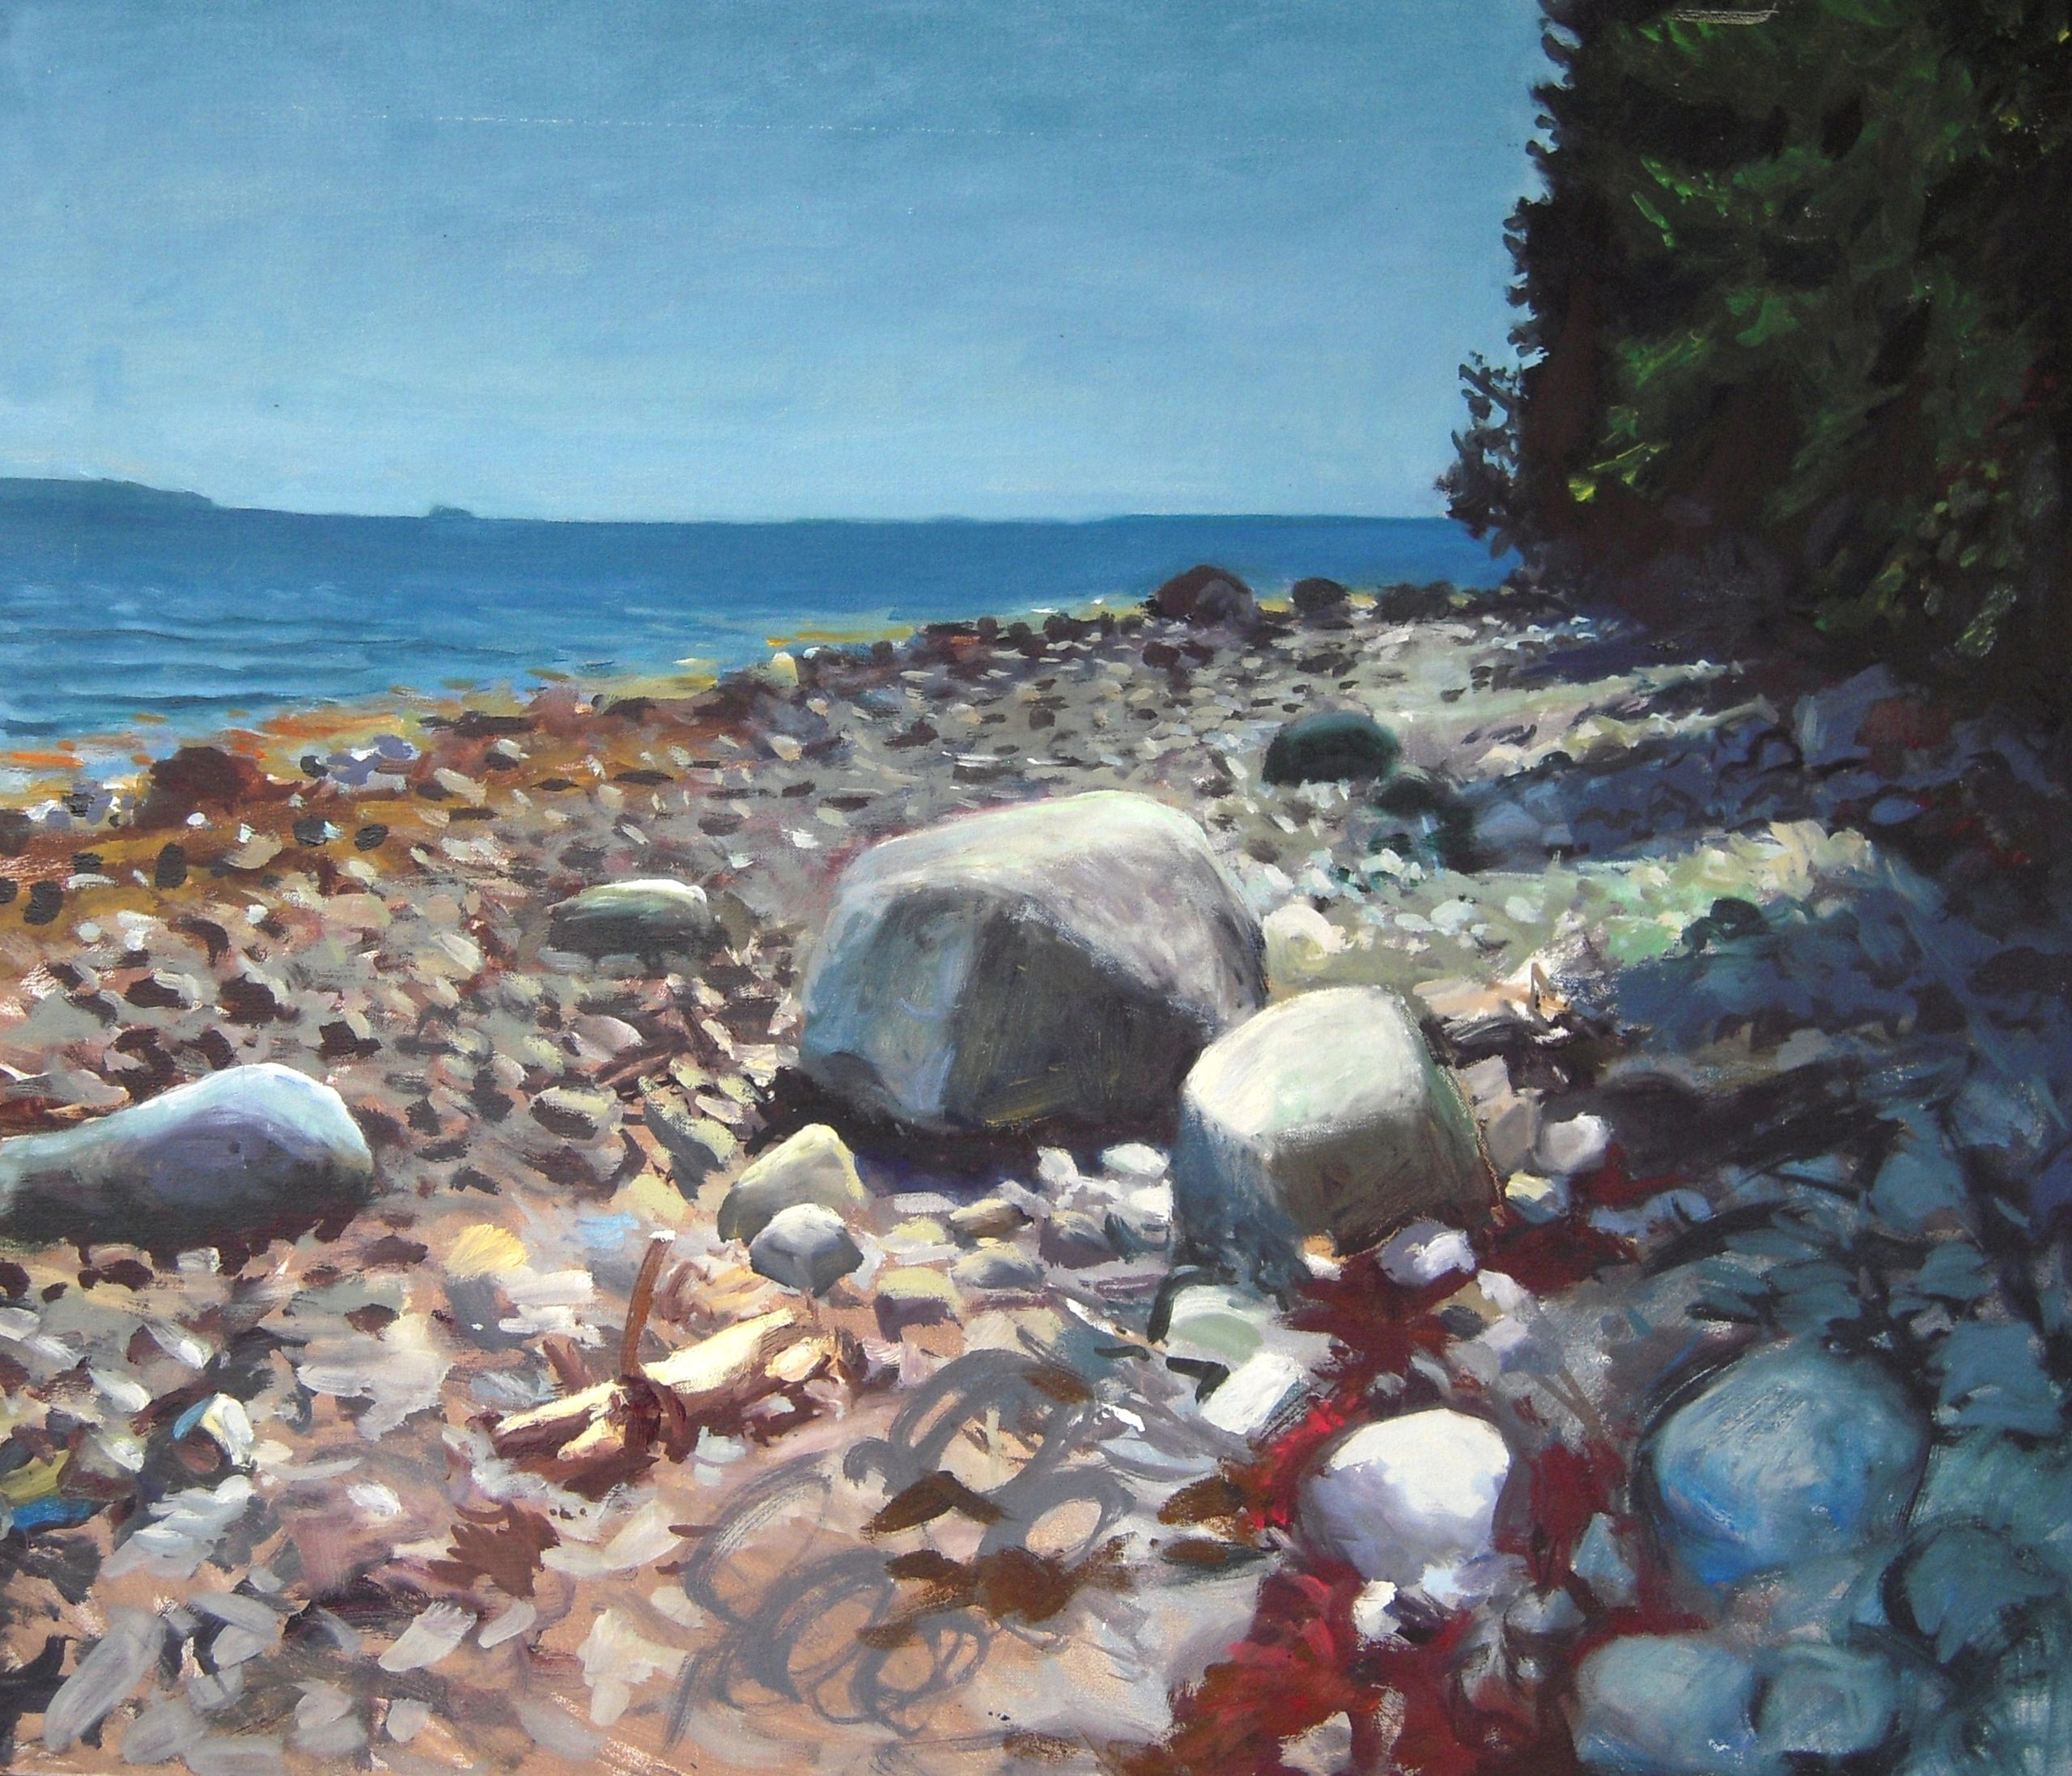 "{""blocks"":[{""key"":""3jilk"",""text"":""Snake Island, Chester, Nova Scotia              Oil on canvas          25 X 30 inches"",""type"":""unstyled"",""depth"":0,""inlineStyleRanges"":[{""offset"":0,""length"":85,""style"":""BOLD""},{""offset"":0,""length"":34,""style"":""ITALIC""}],""entityRanges"":[],""data"":{}}],""entityMap"":{}}"